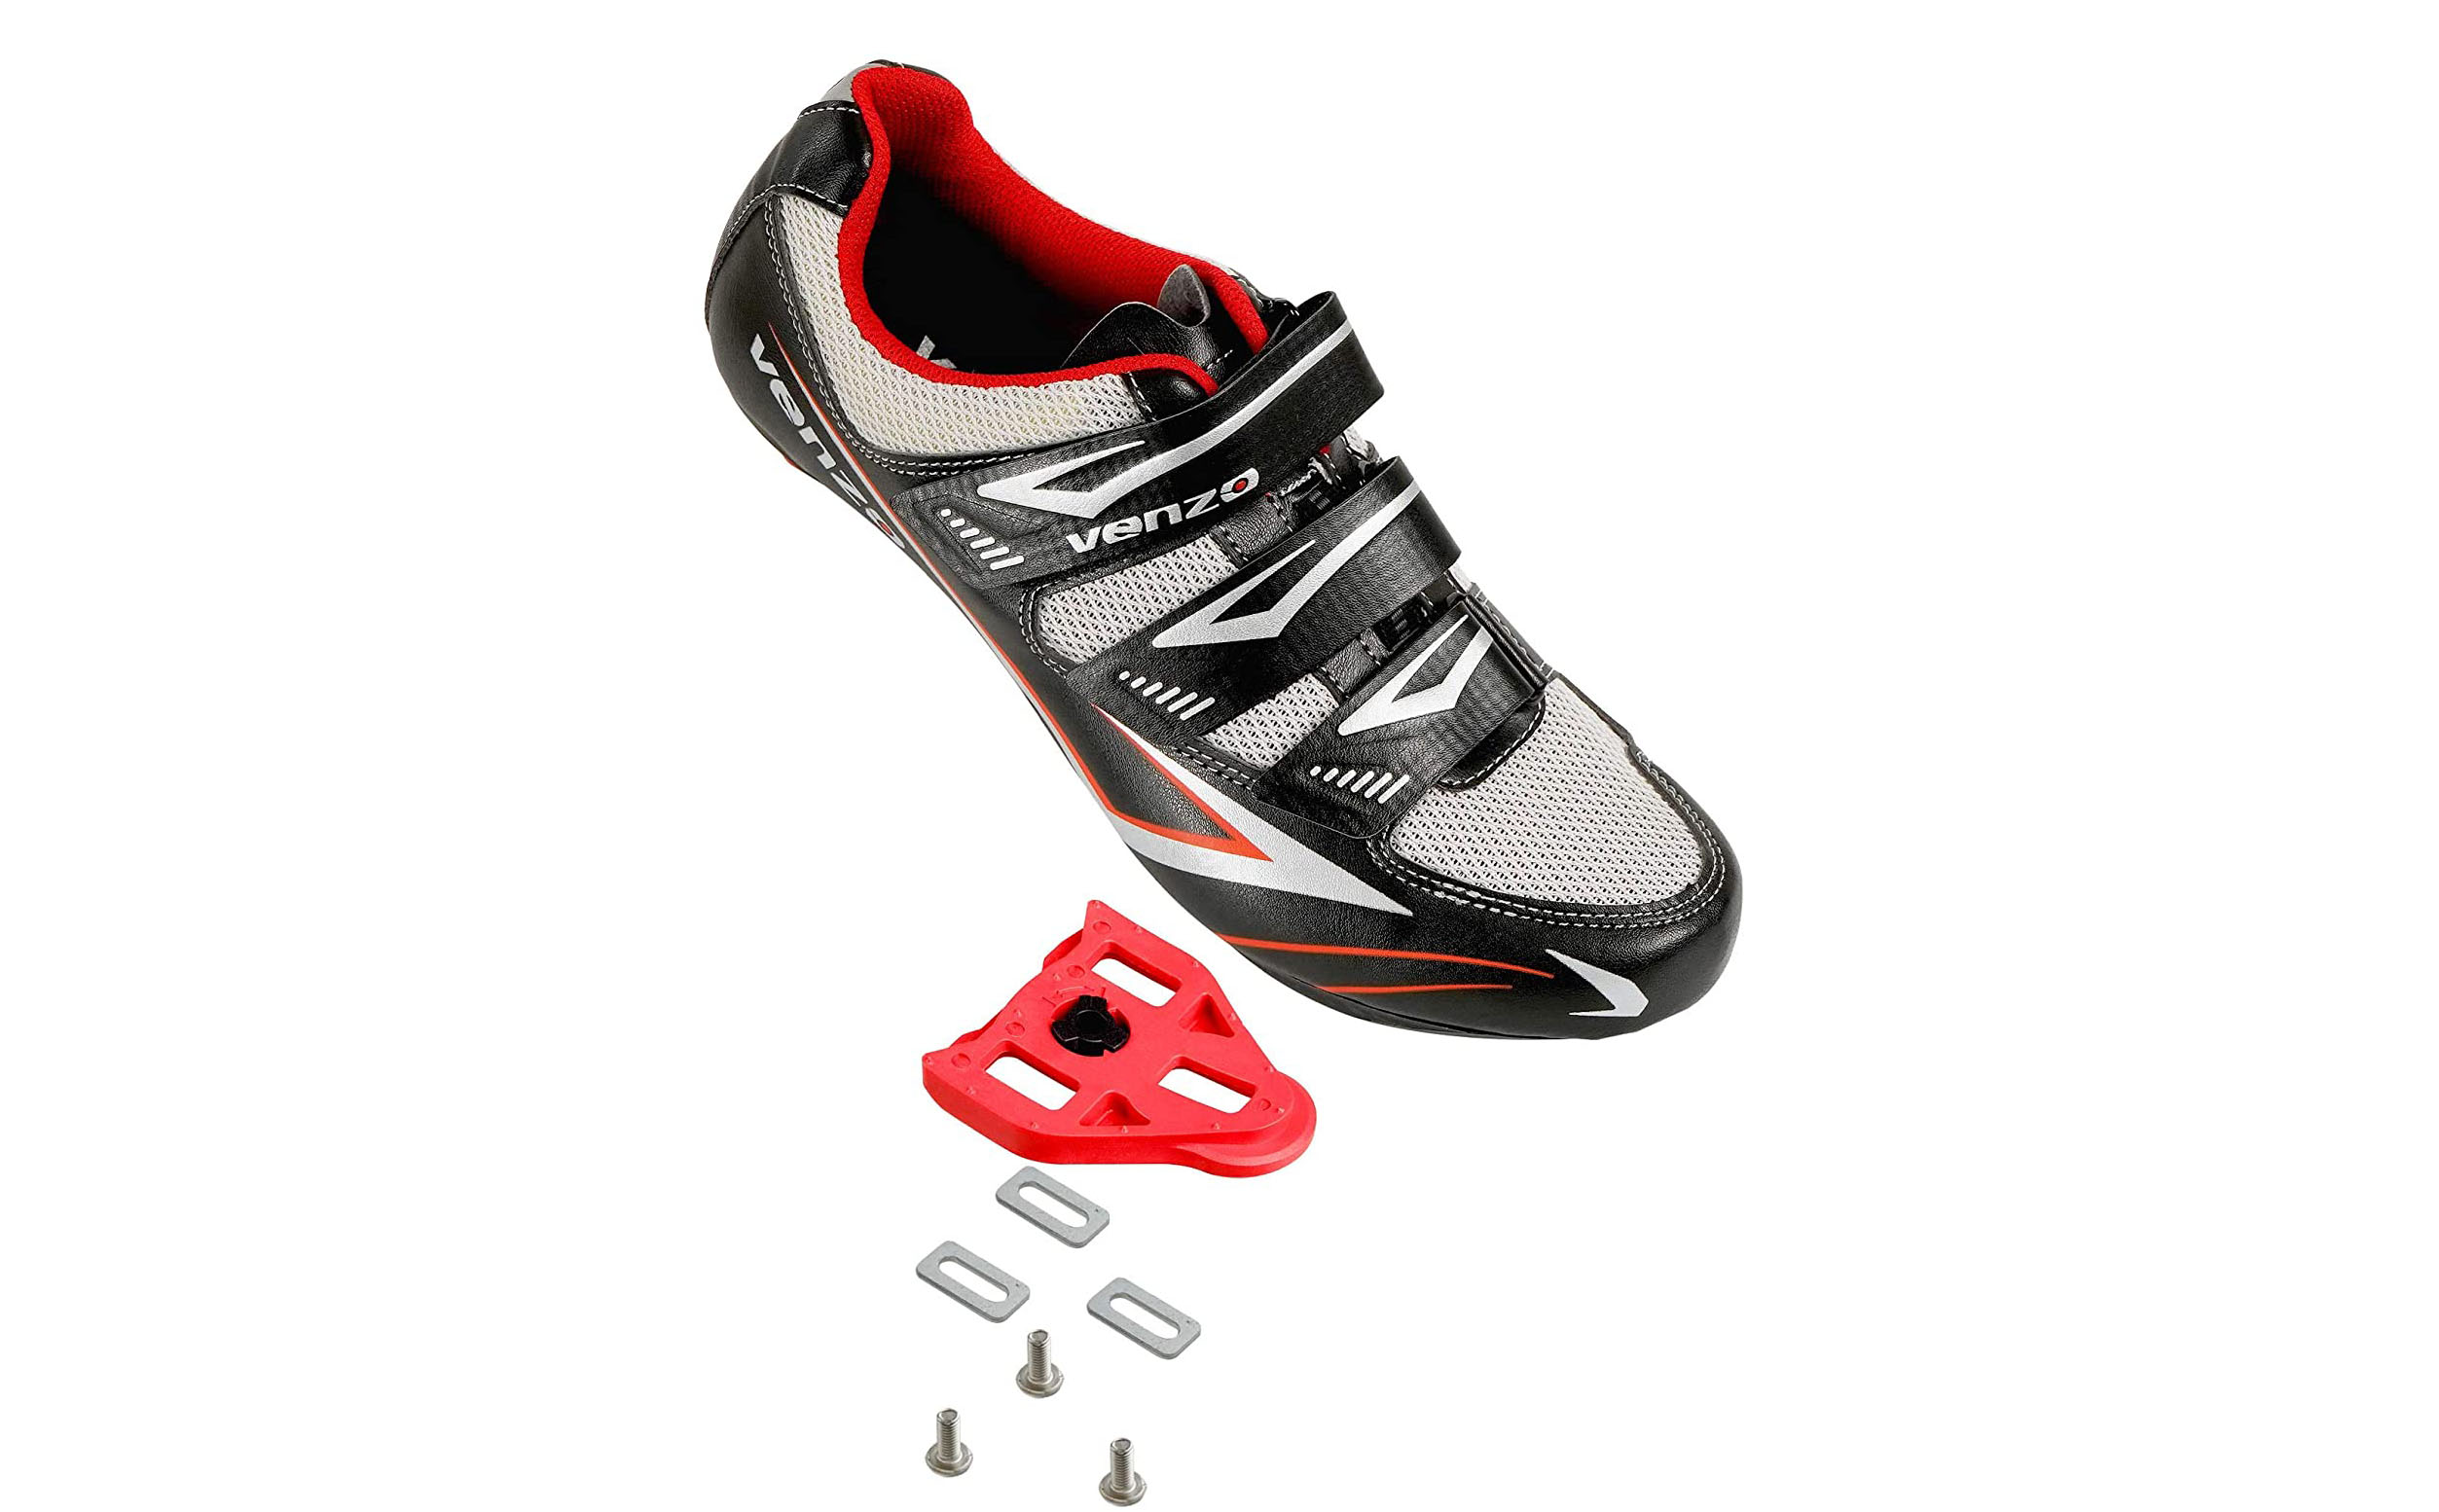 Venzo Bicycle Women's Indoor Cycling Shoes for Peleton